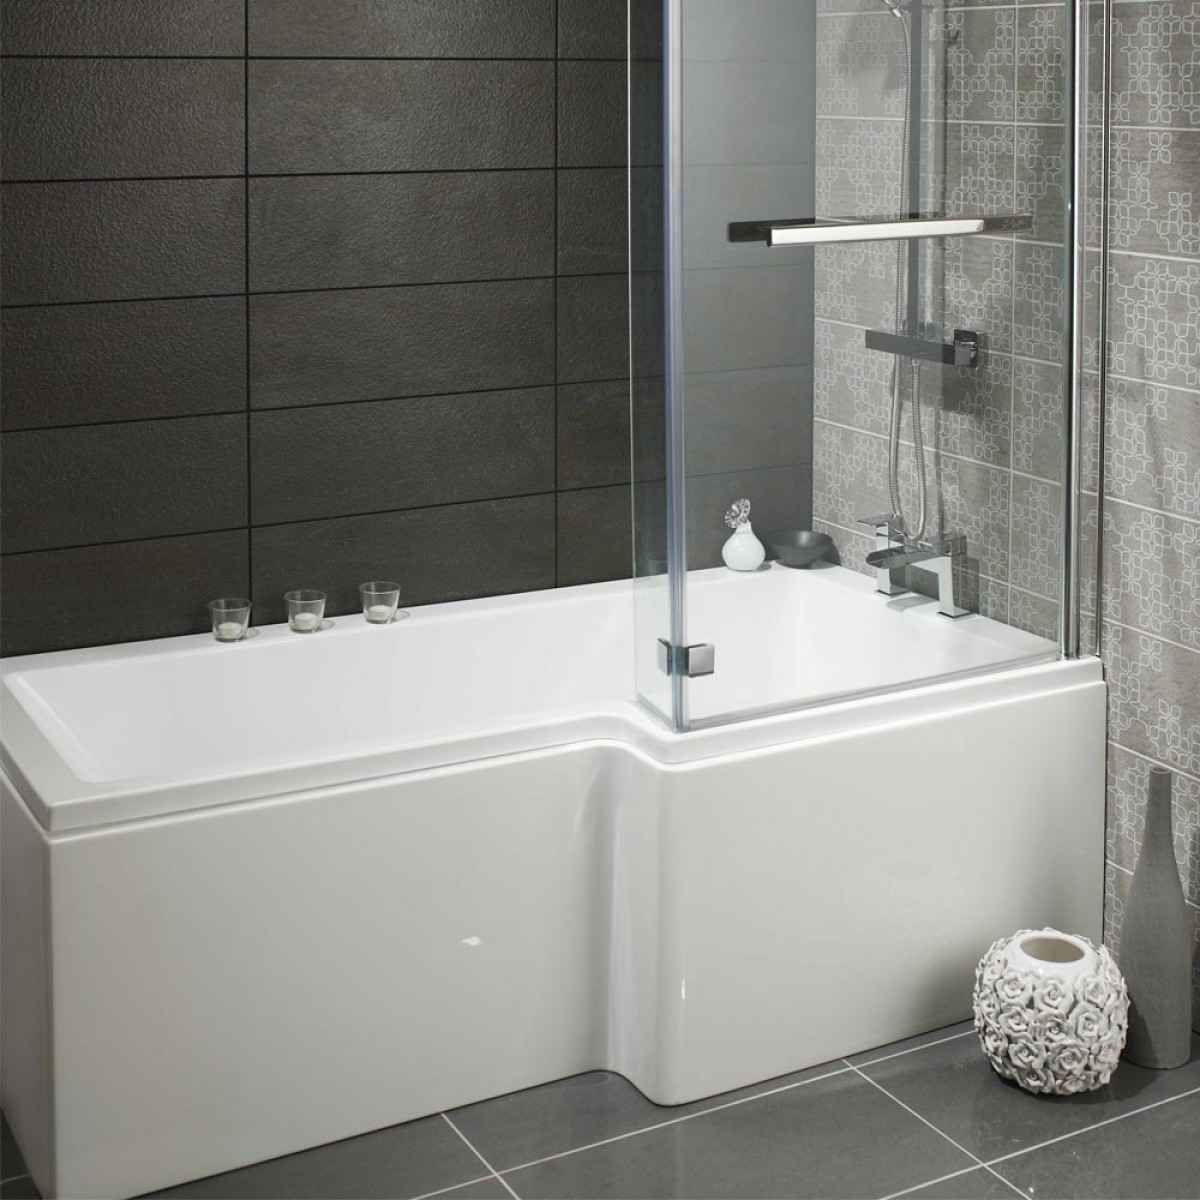 lily heavy duty lshaped shower bath with glass screen